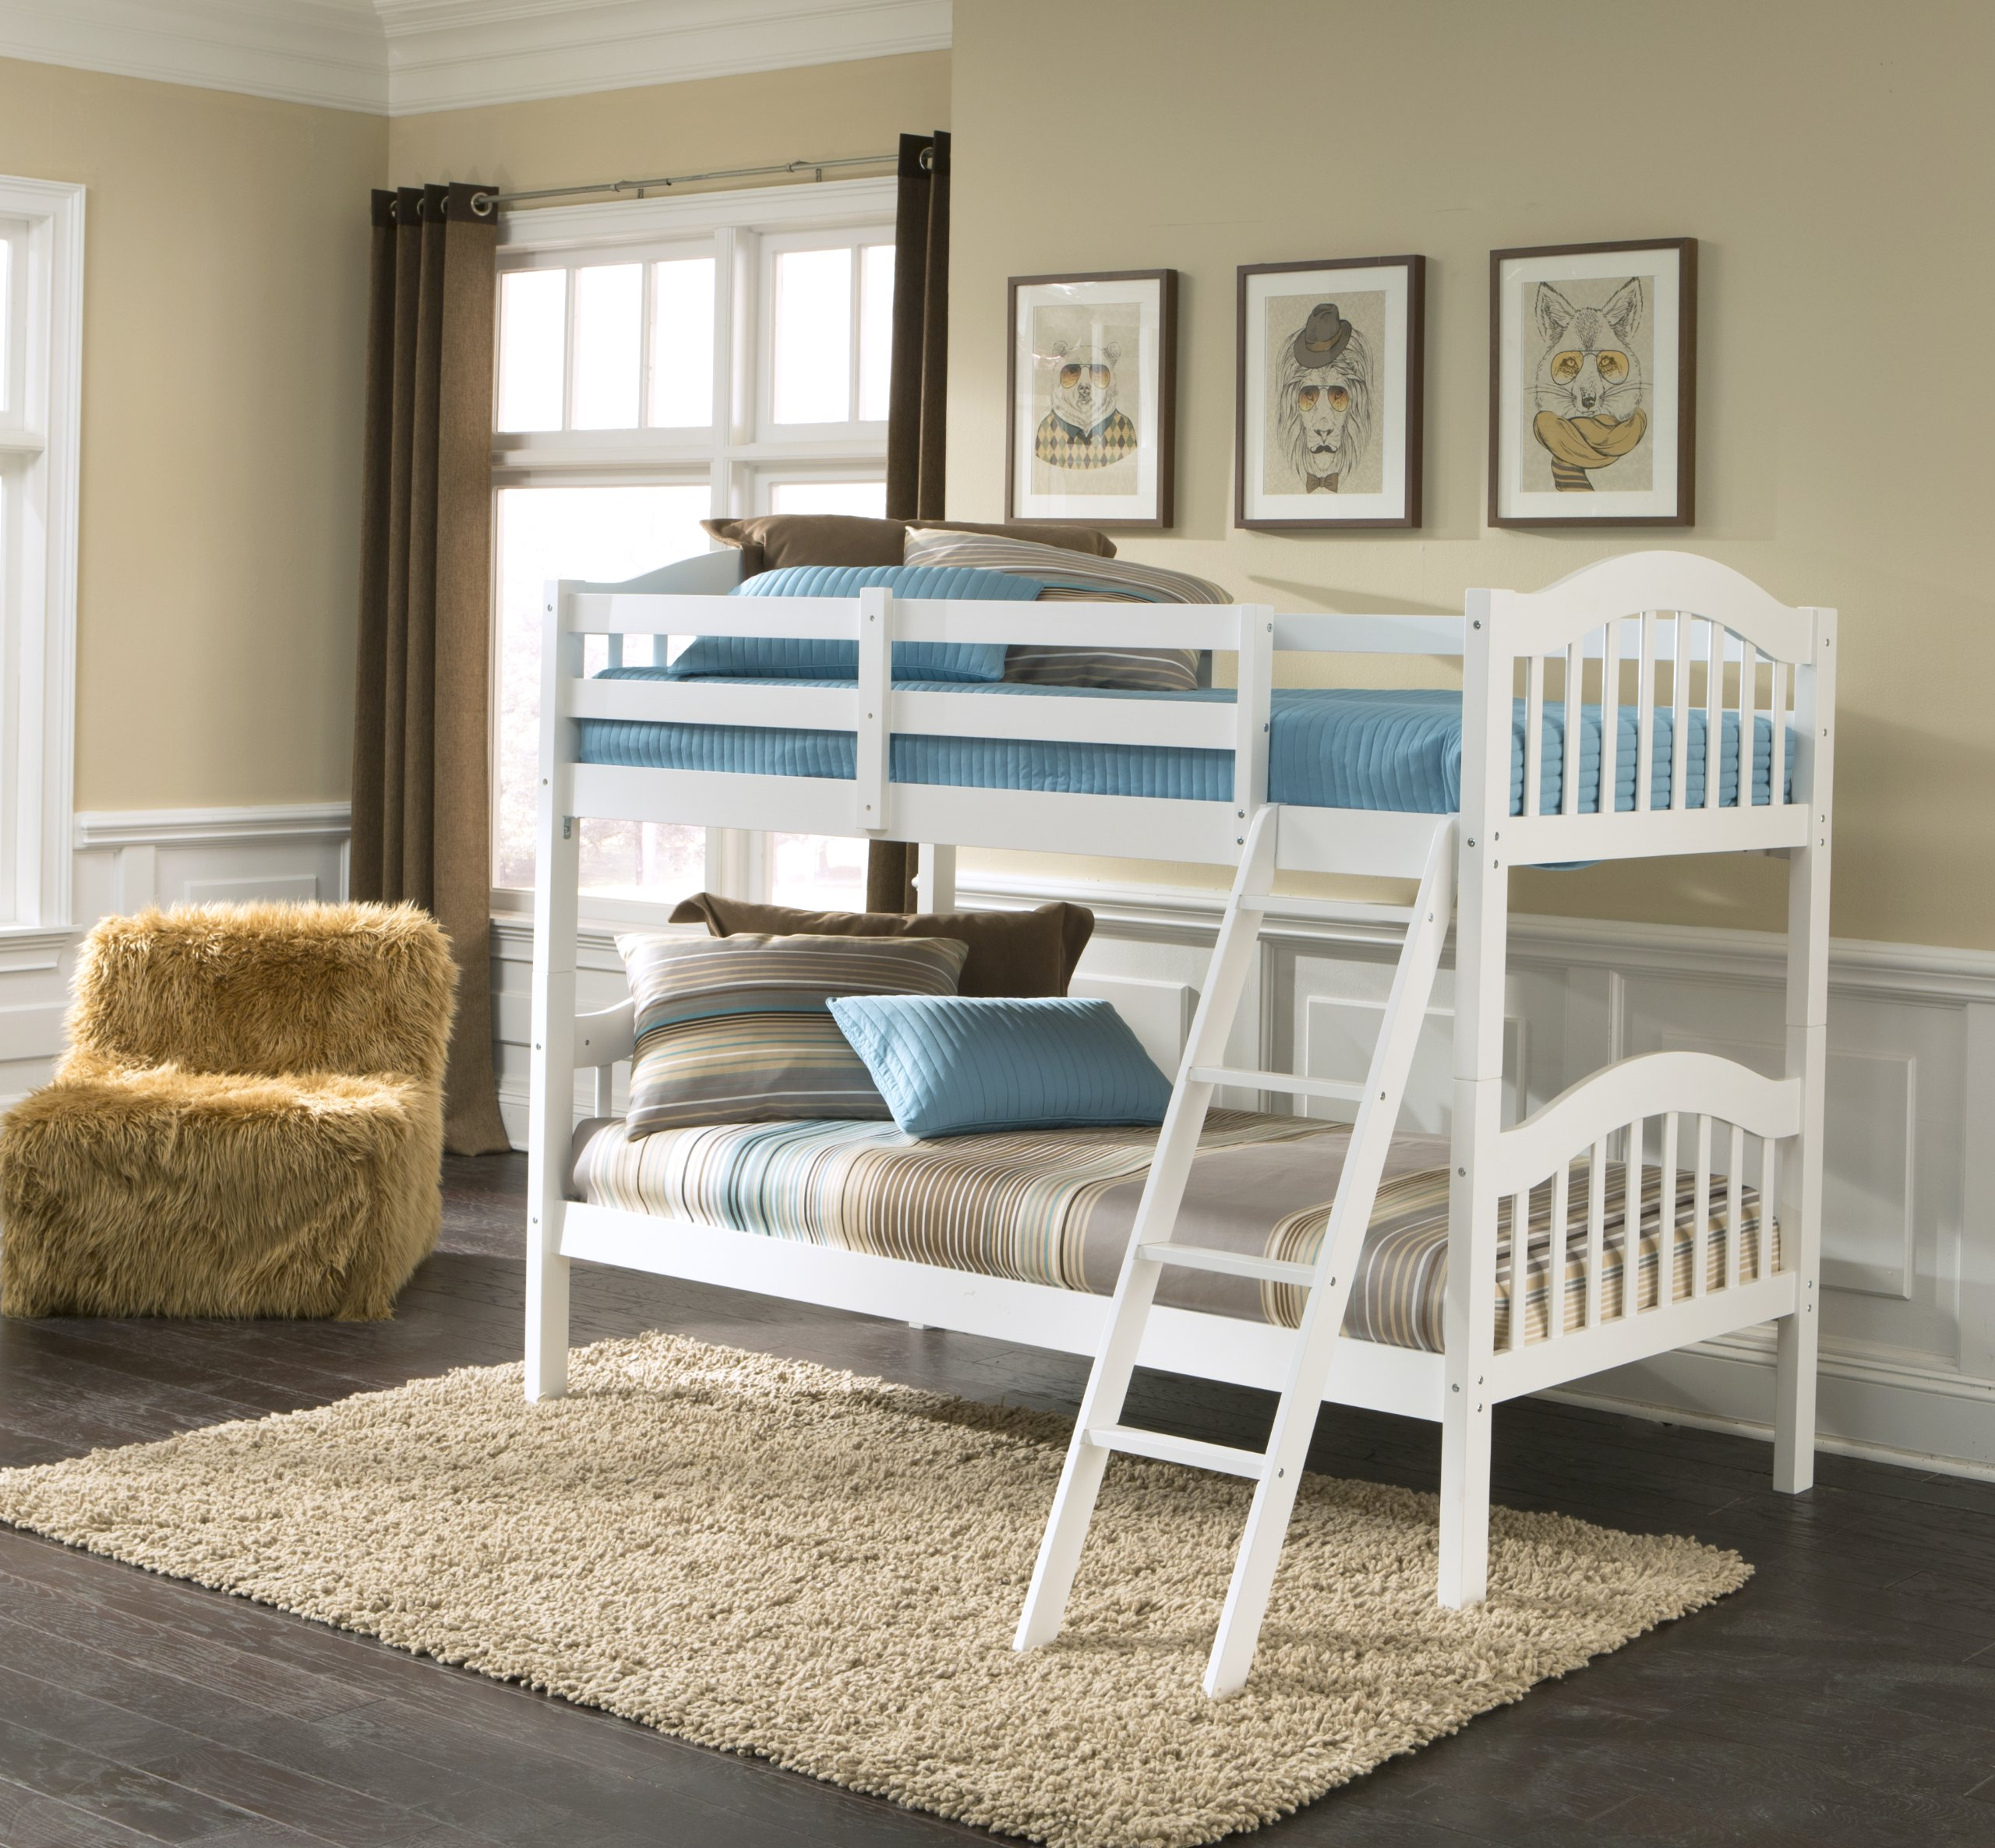 Storkcraft Long Horn Solid Hardwood Twin Bunk Bed, White Twin Bunk Beds for Kids with Ladder and Safety Rail by Stork Craft